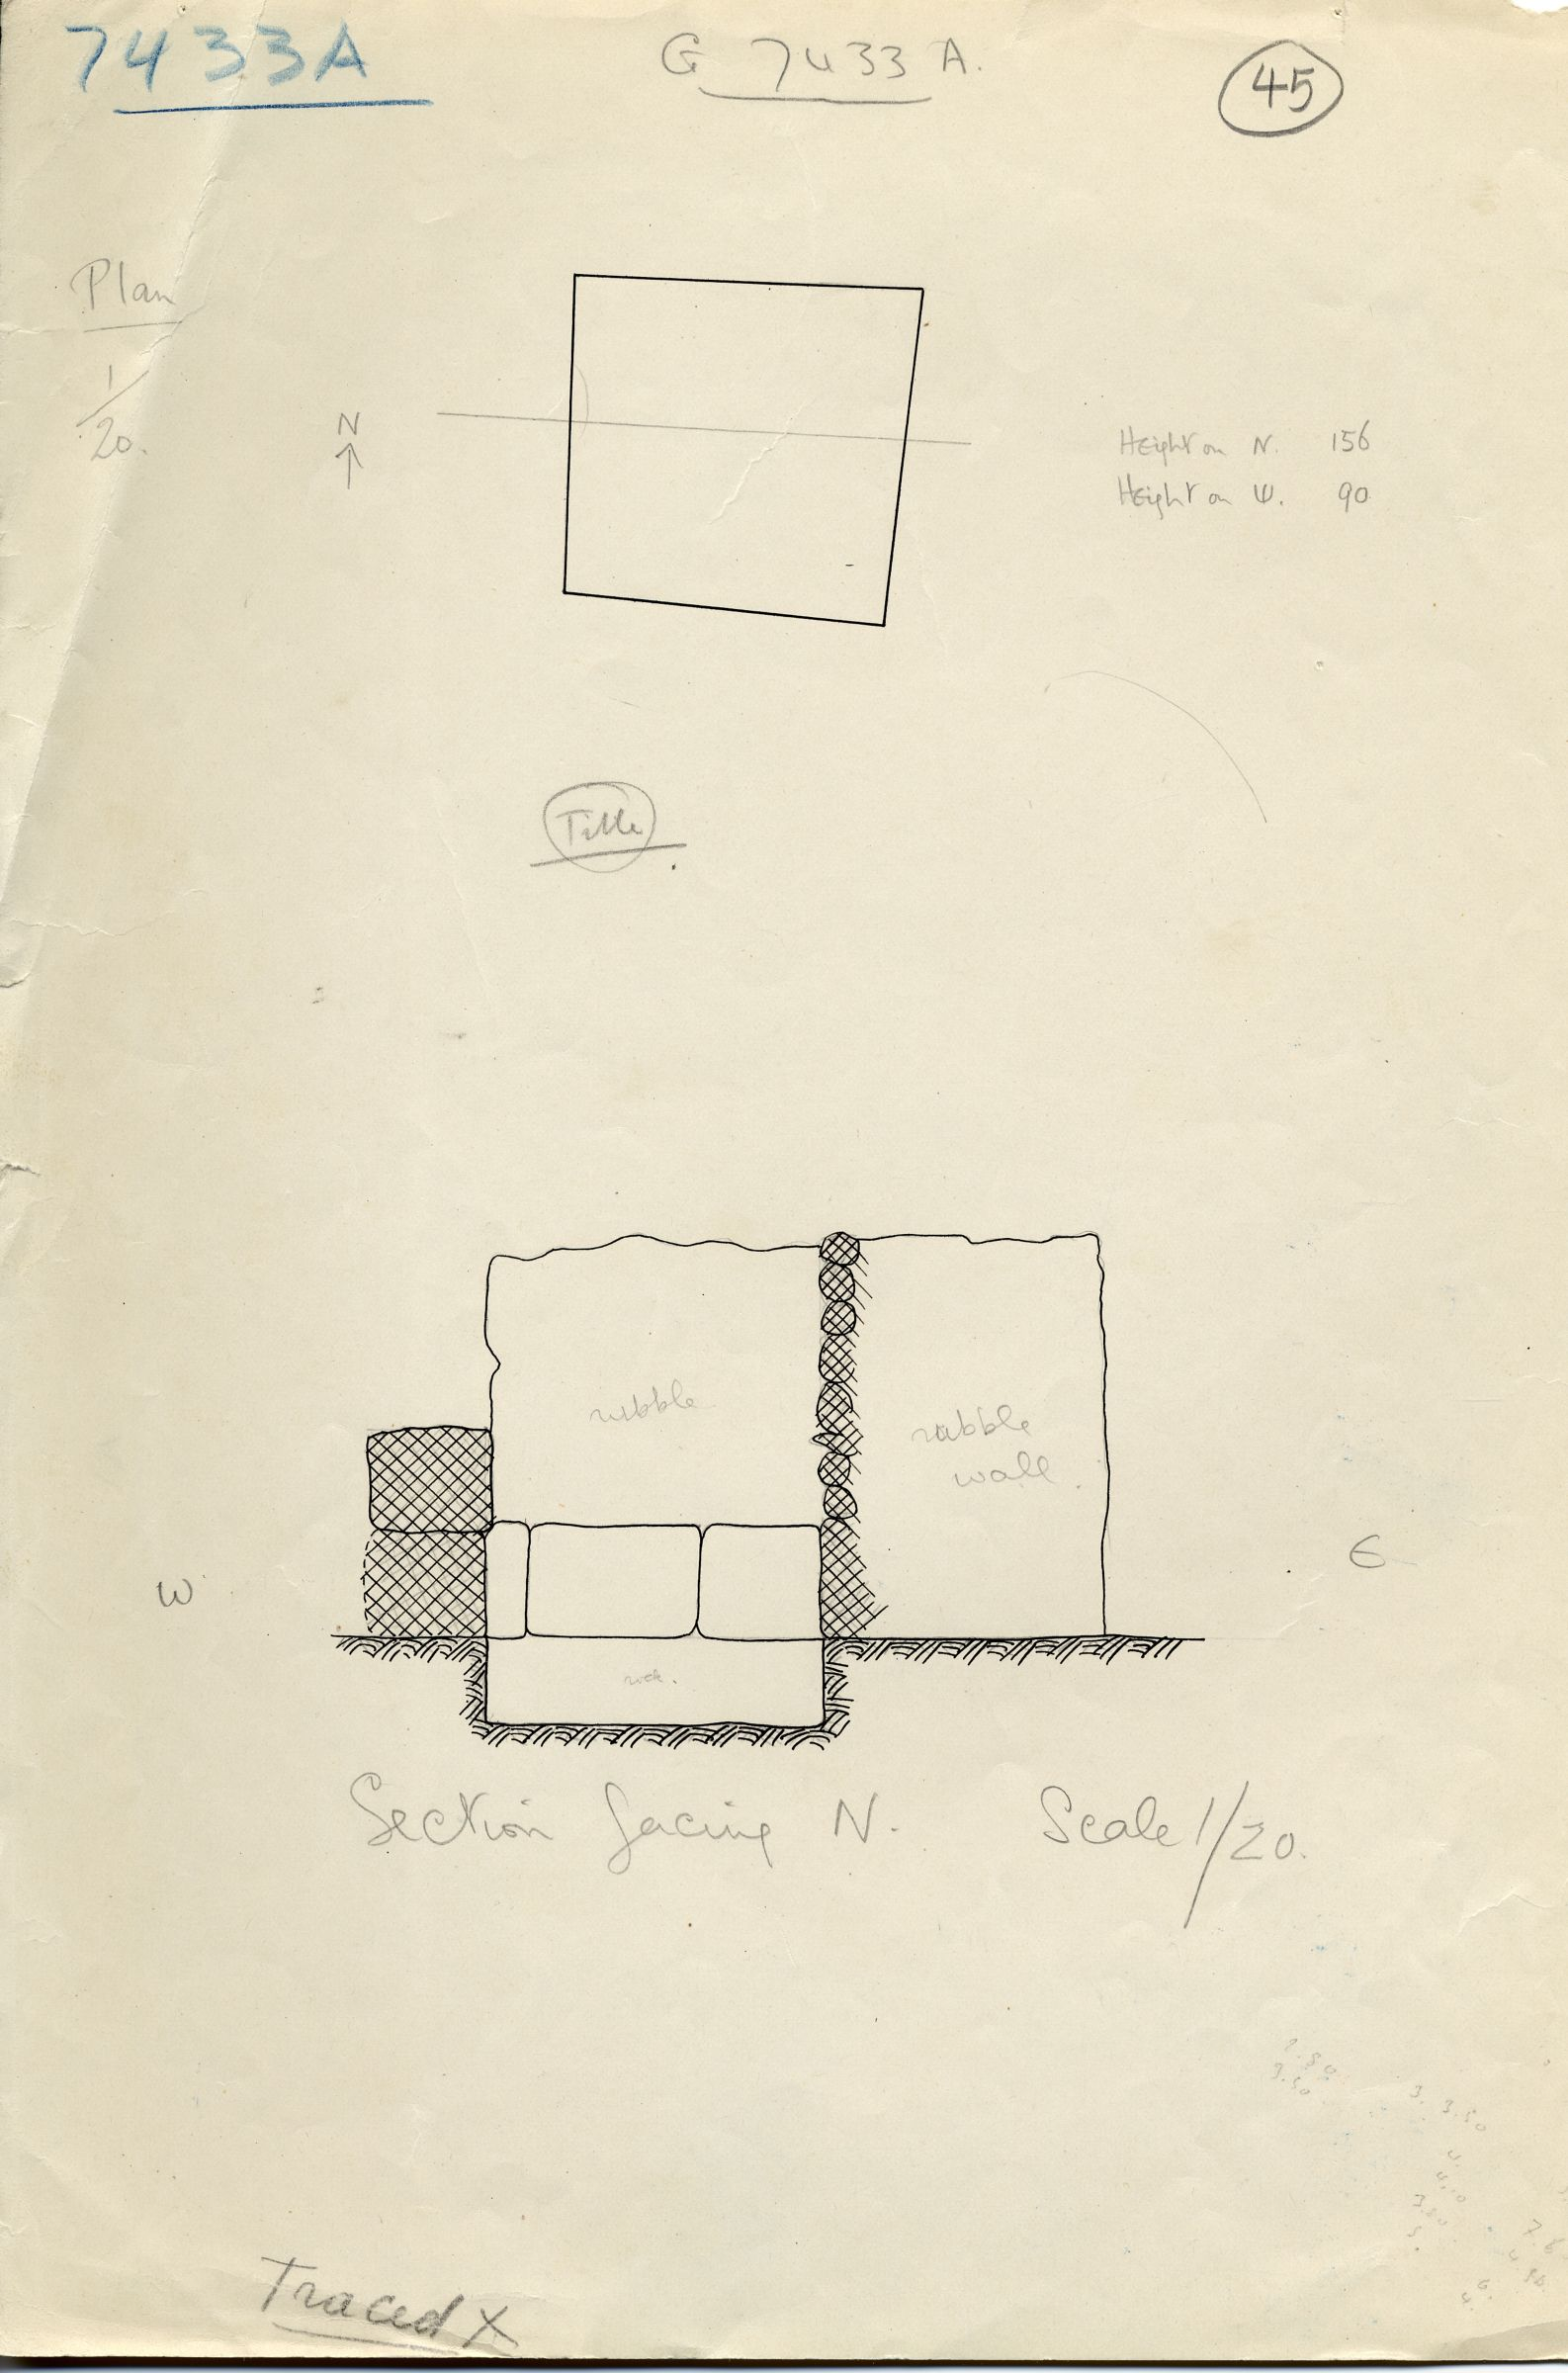 Maps and plans: G 7433, Shaft A